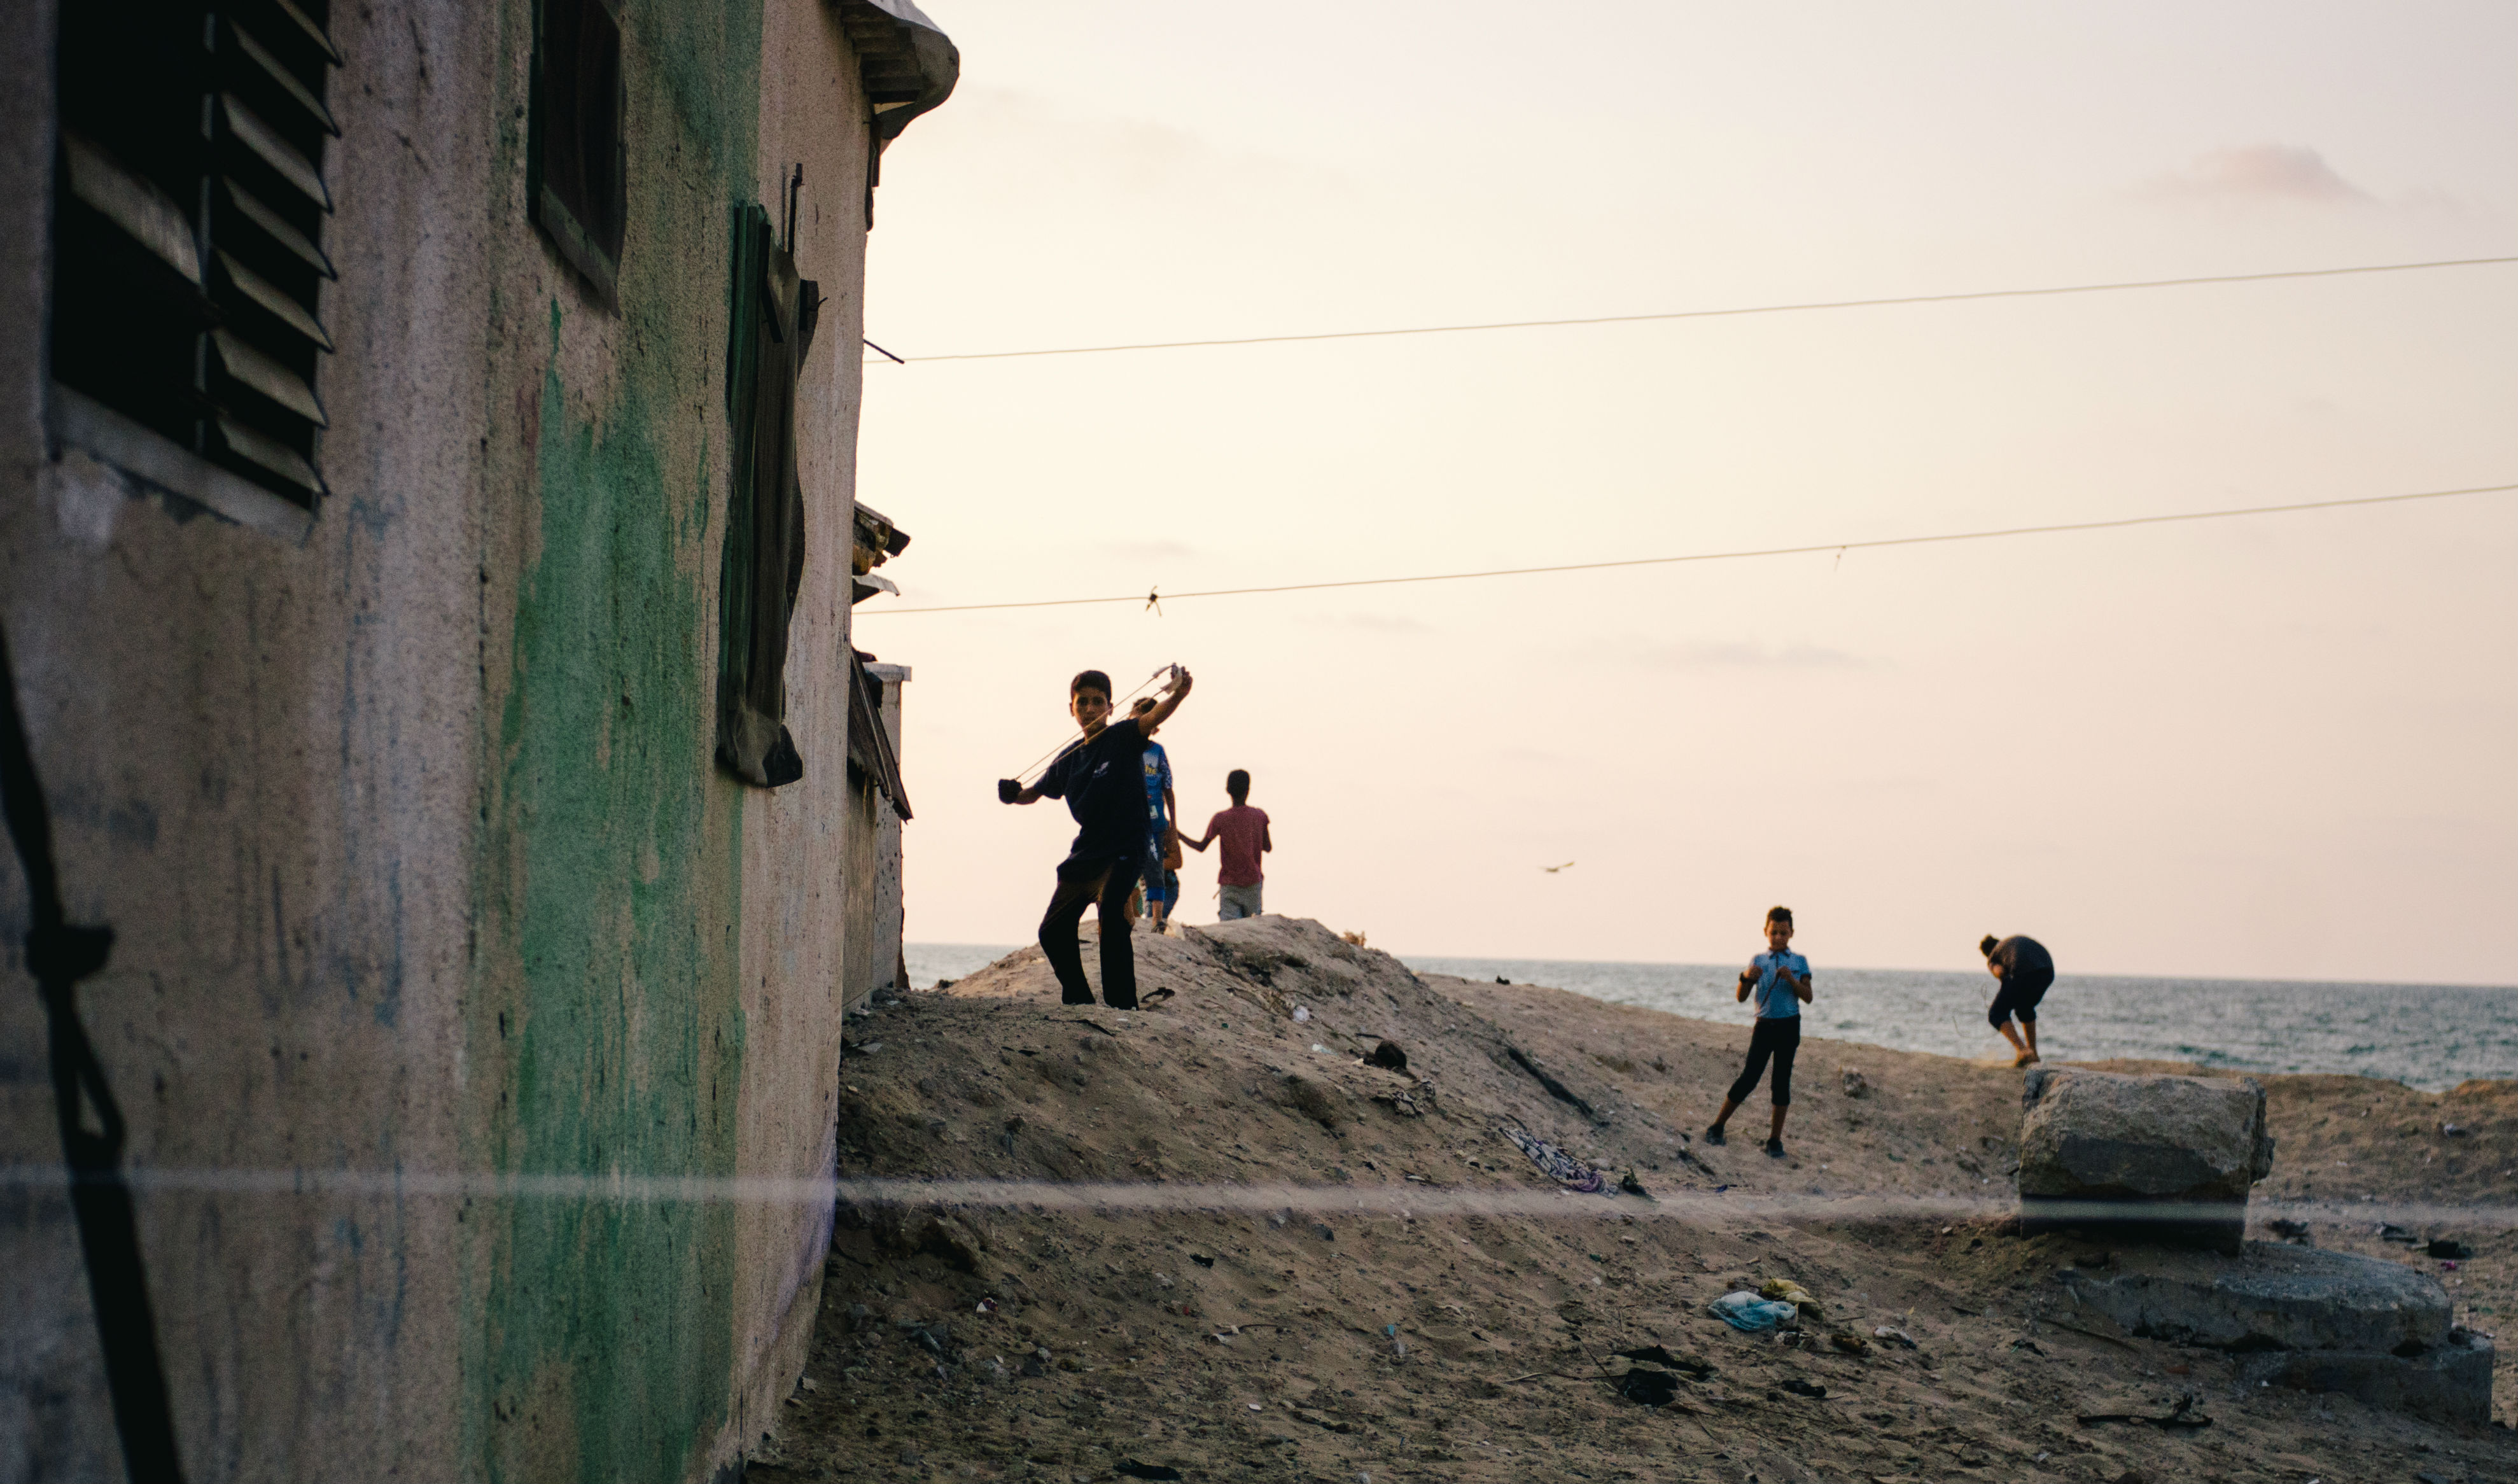 As the men and older teens weave the ropes for fishing nets, Shati camp's kids play on the shore, flinging stones into the Mediterranean with their sling shots. Only metres away a wastewater pipe pumps sewage into the sea